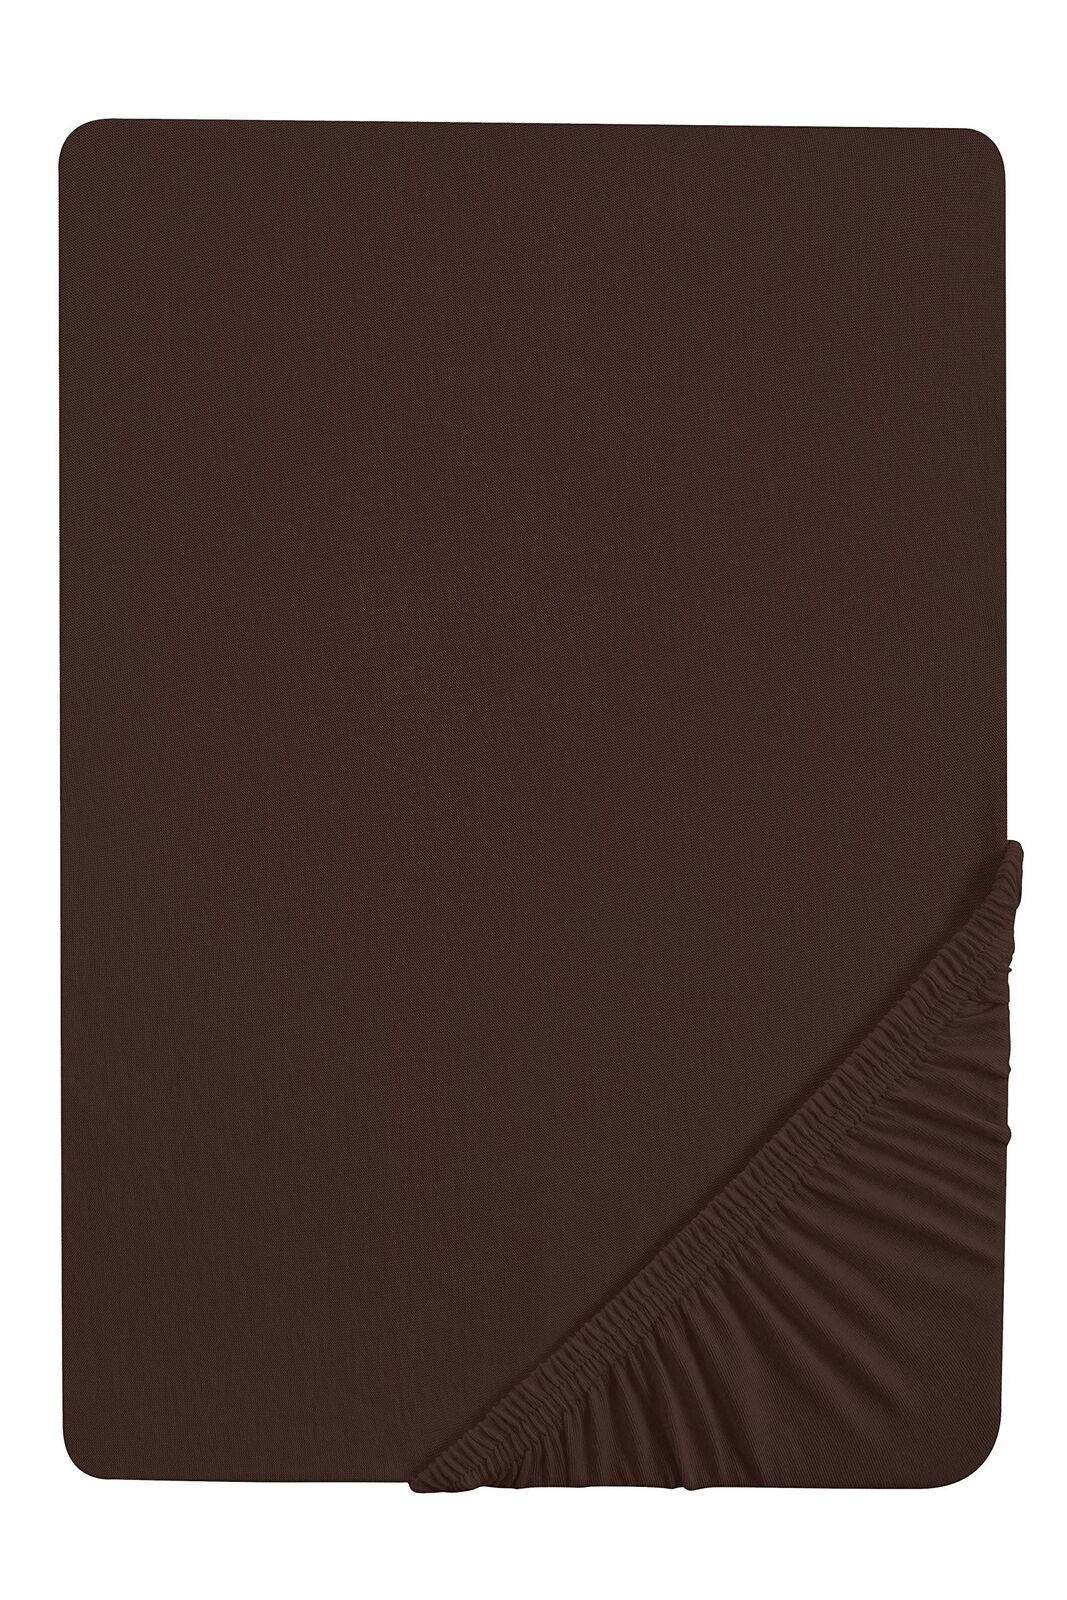 Biberna 77155 Jersey Stretch Fitted Sheet According to ÖKo-Tex Standard 100, ...